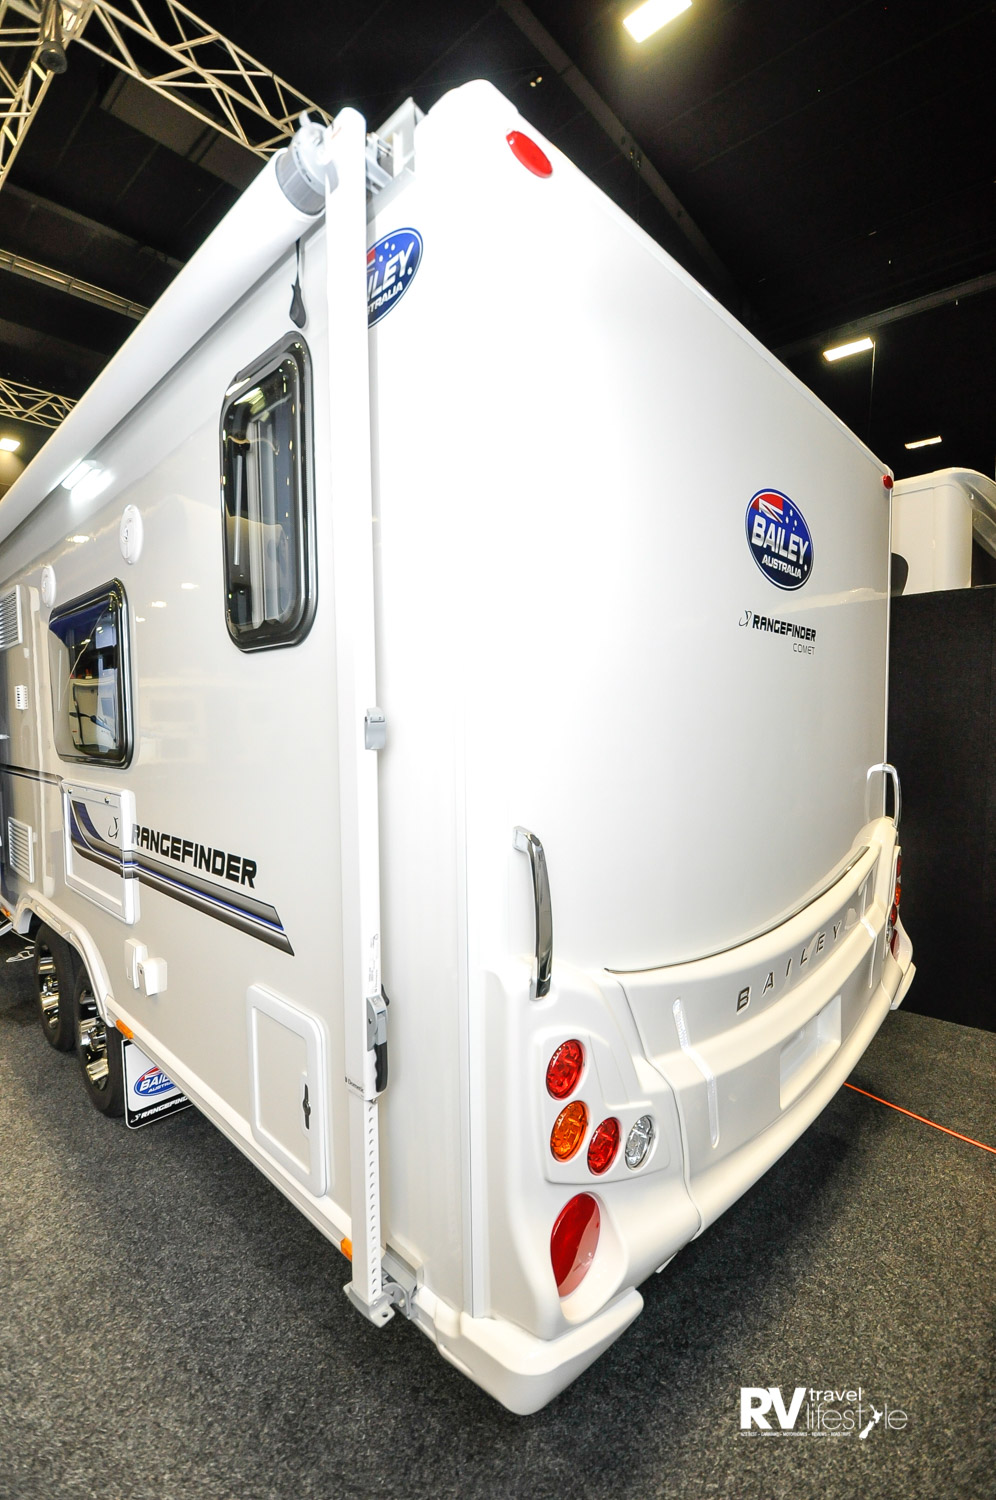 2017 - Aussie-built, UK-brand Bailey Rangefinder models – various models on display at recent motorhome shows